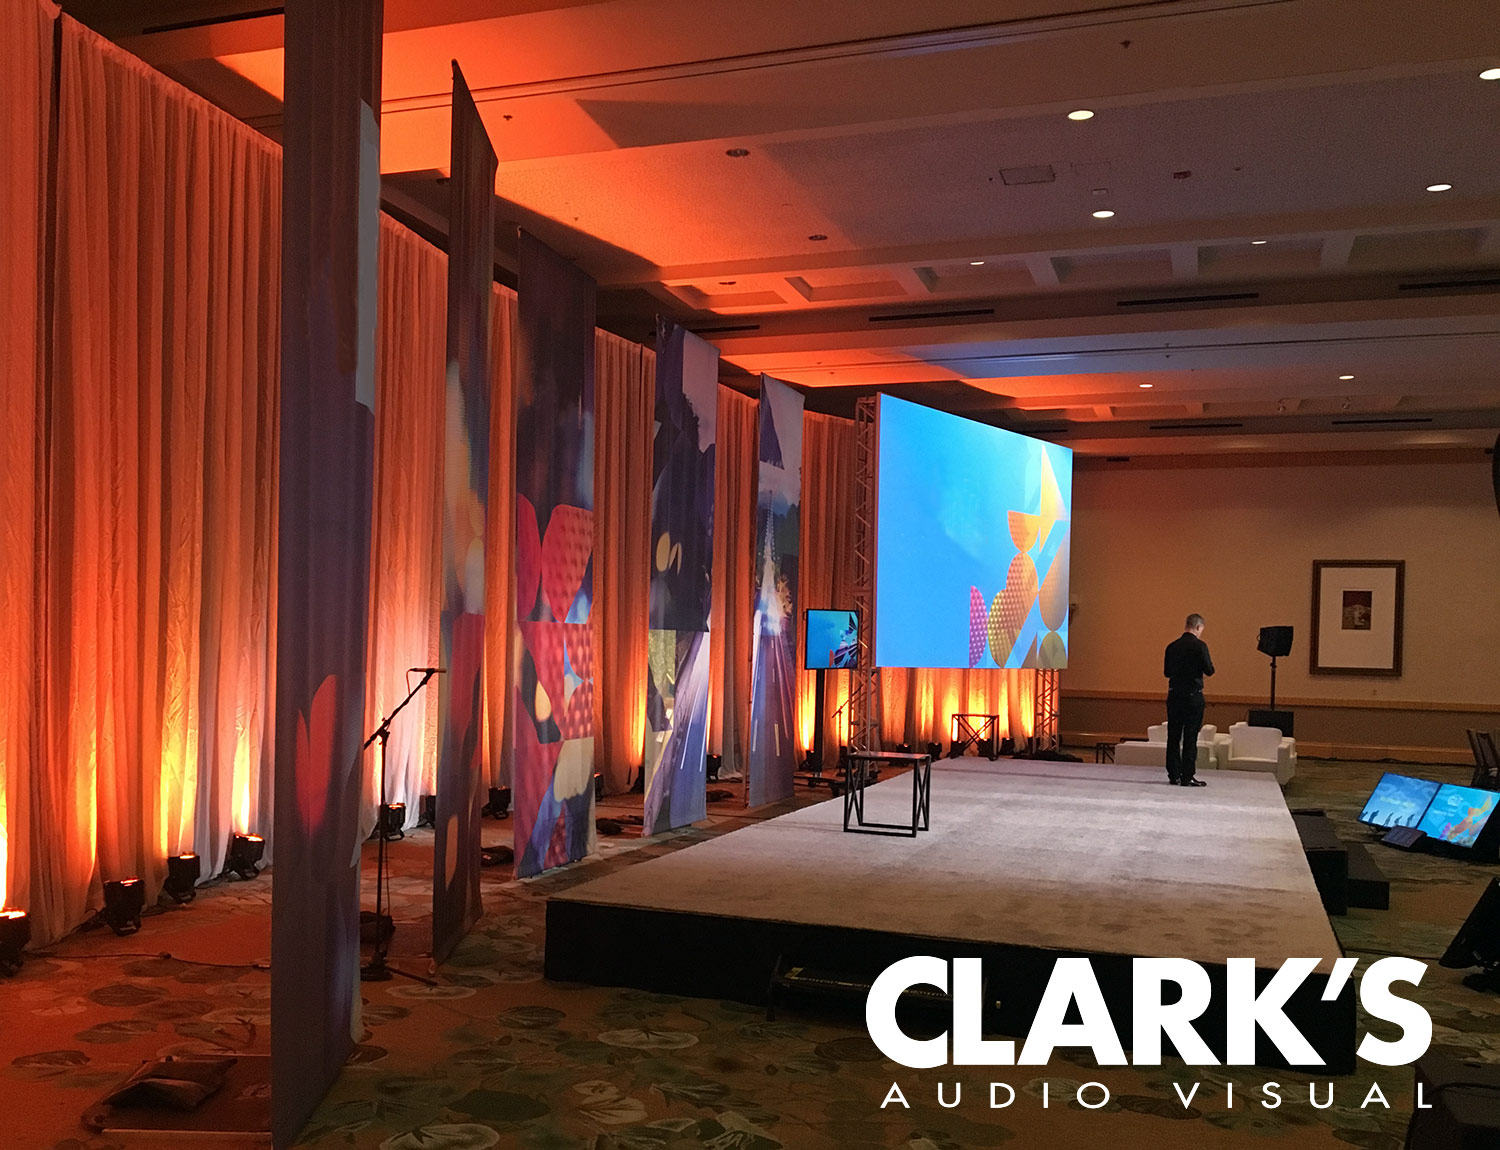 Clark's Audio Visual Corporate Event